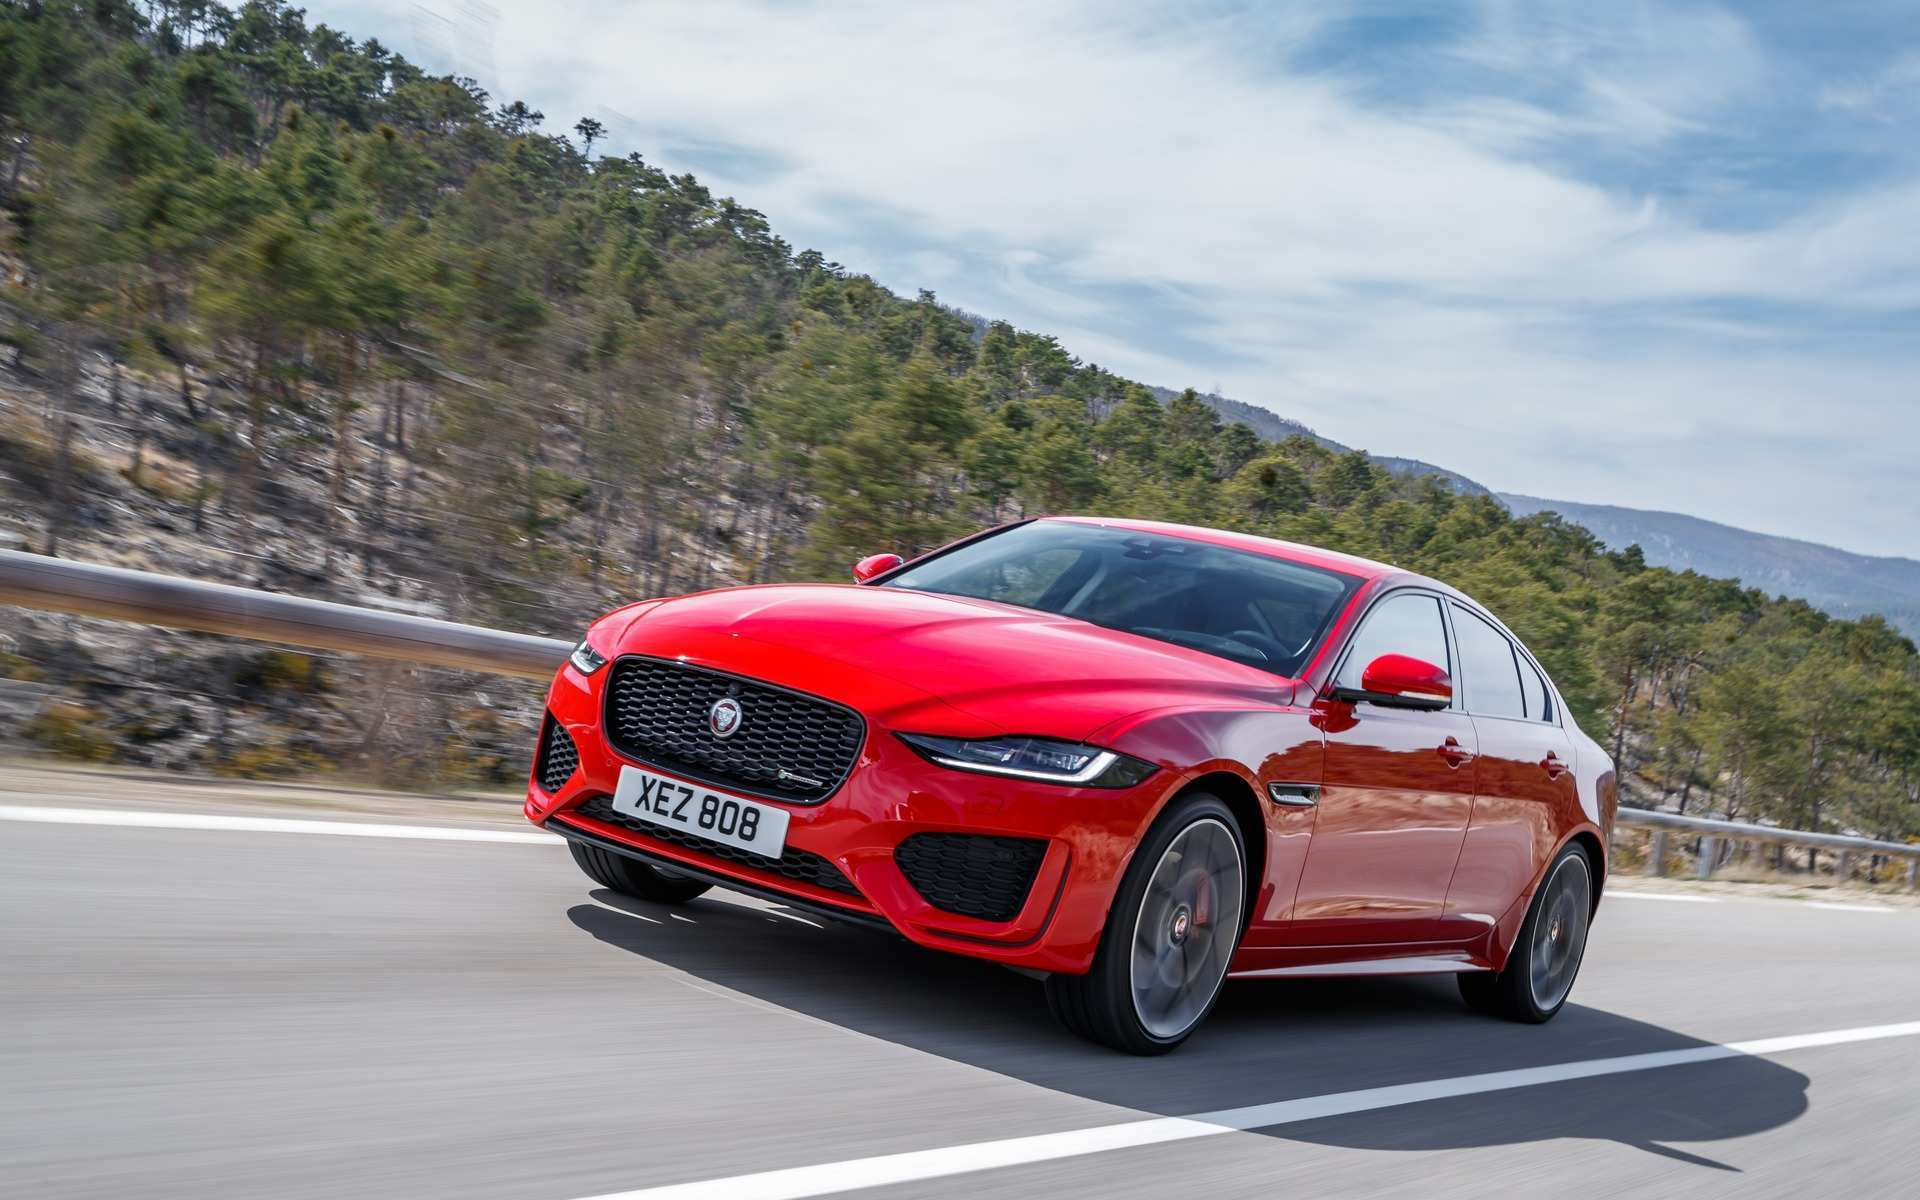 64 The 2020 Jaguar Xe Sedan New Review